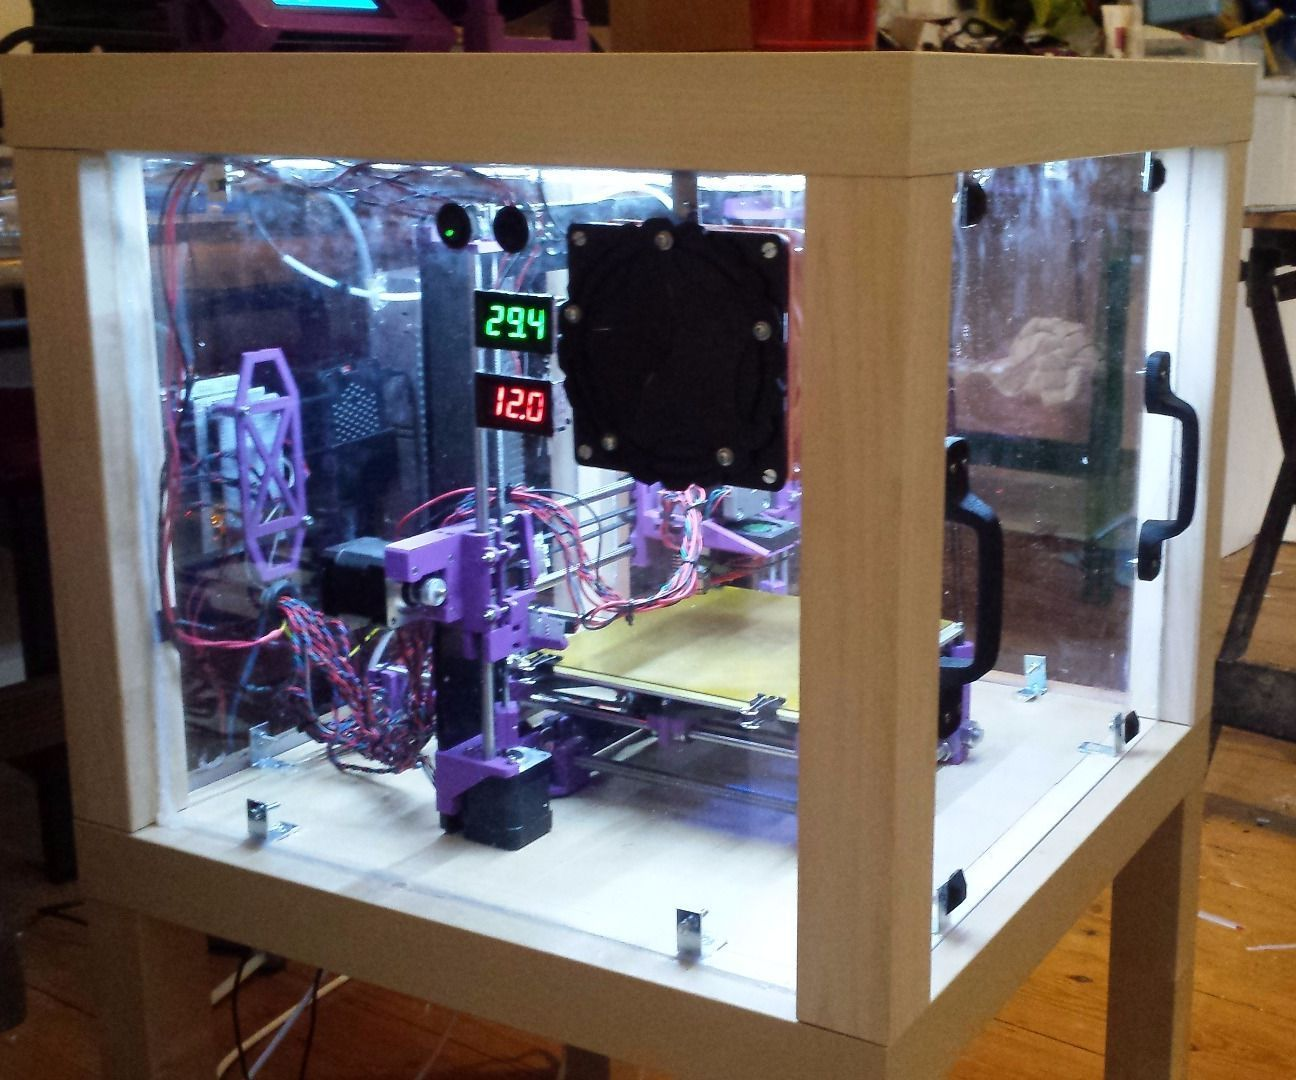 3d Printer Enclosure From Upcycled Furniture 3d printer